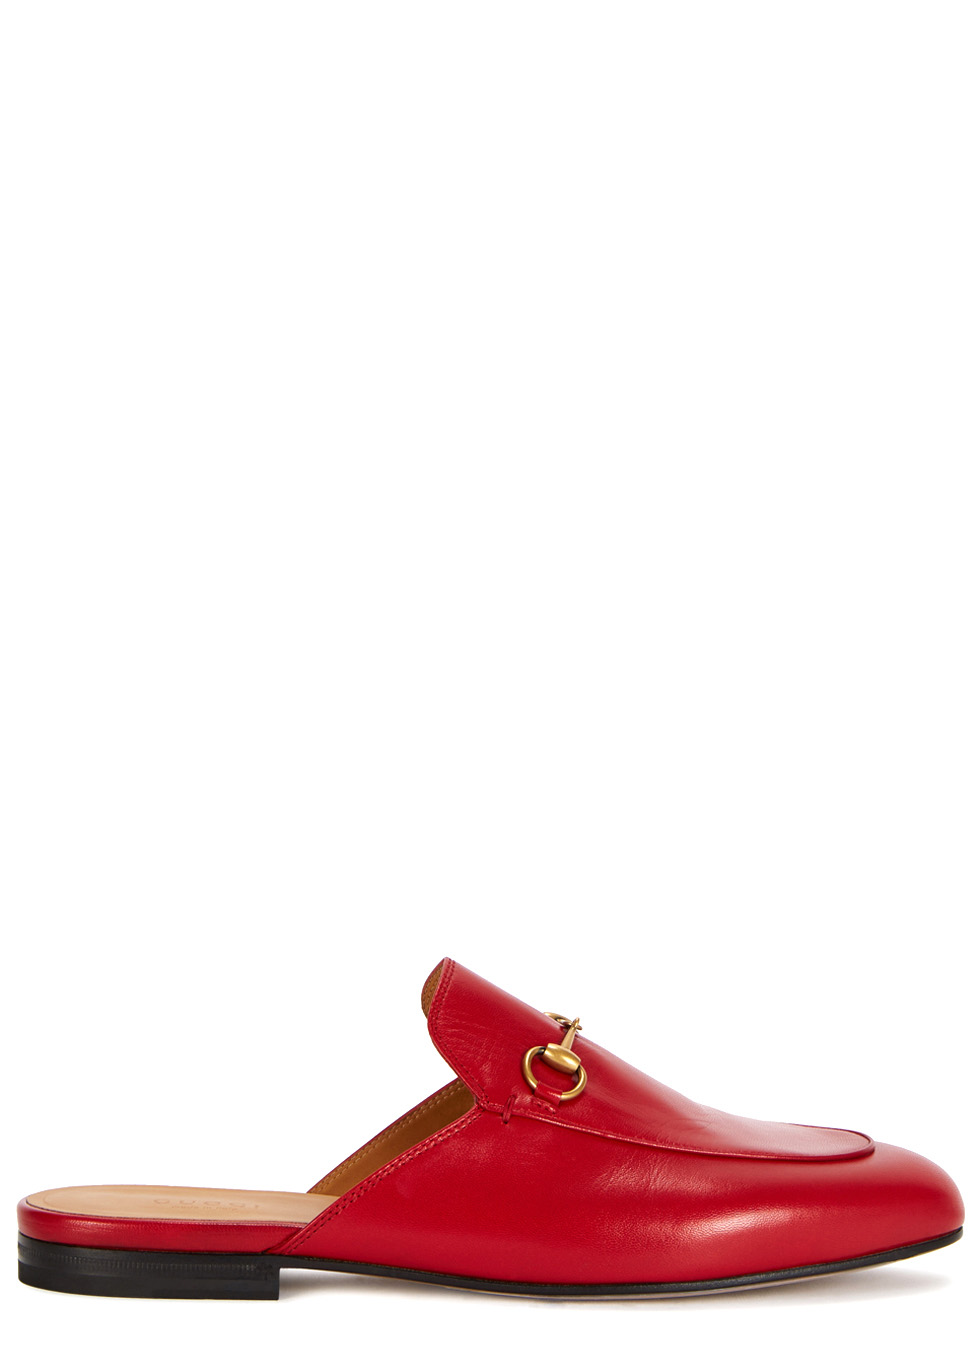 Gucci Princetown red leather backless